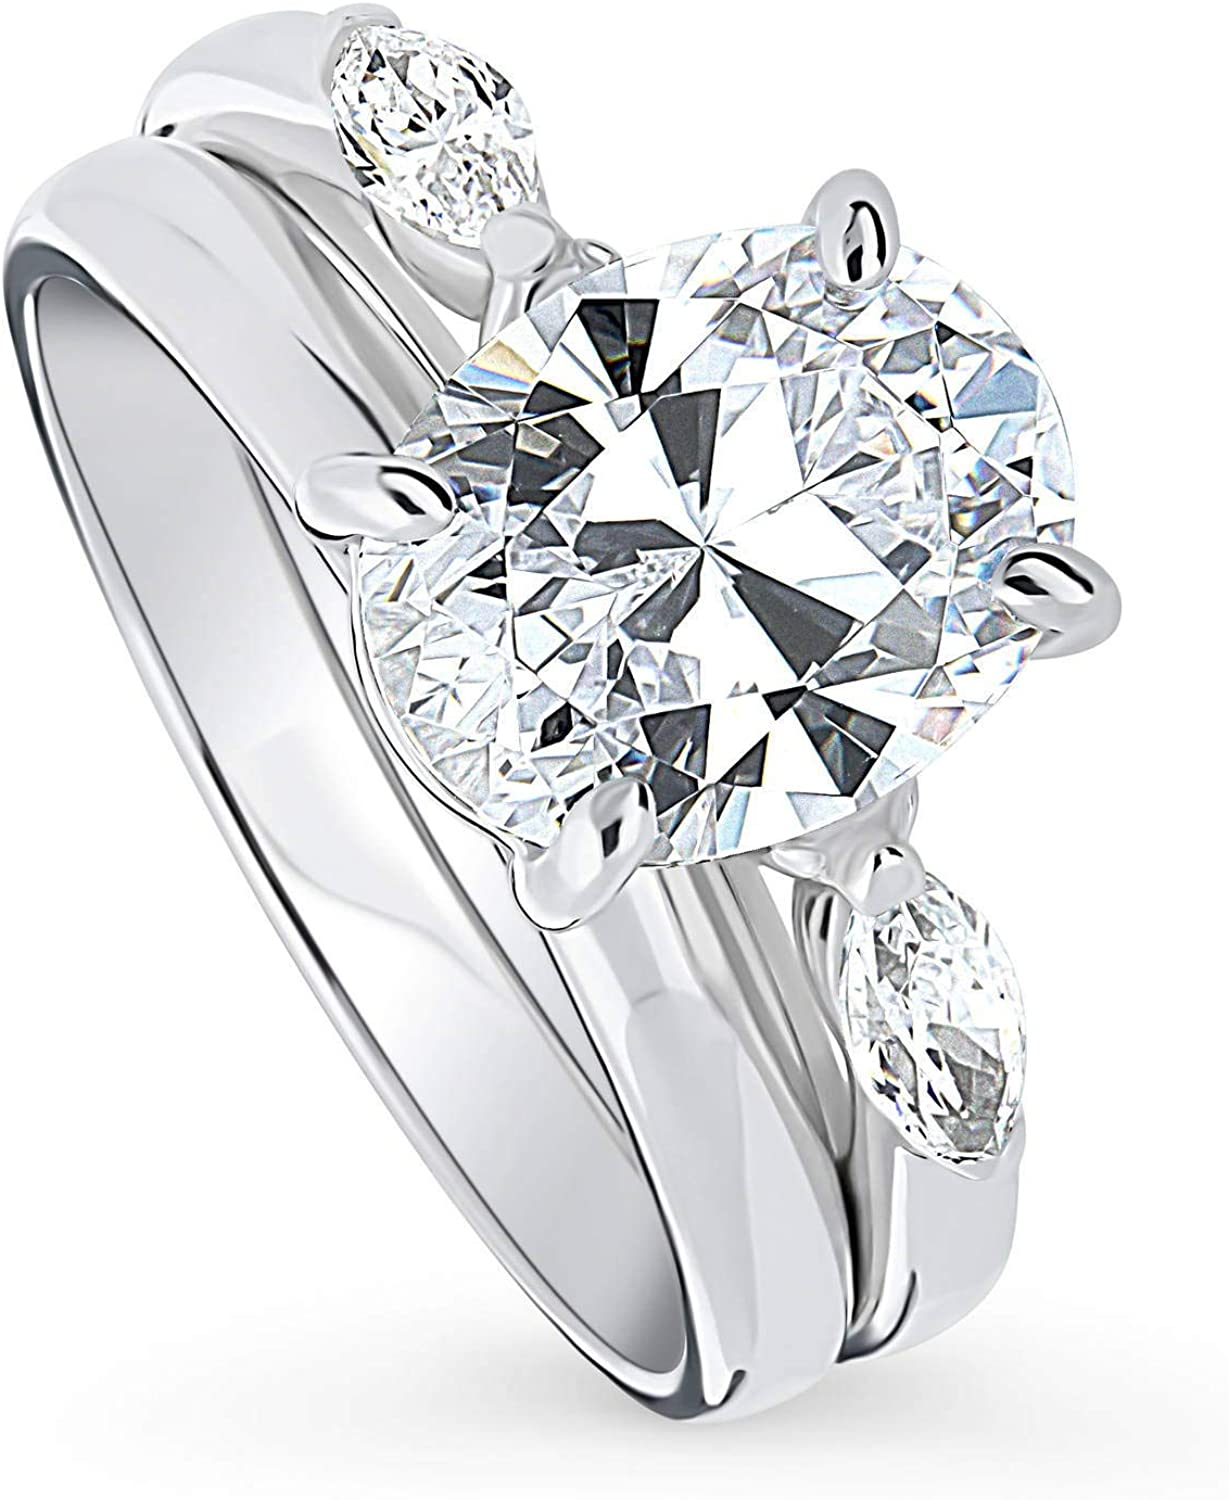 BERRICLE Rhodium Plated Houston Mall Max 88% OFF Sterling Silver Cubic Cut Oval Zirconia